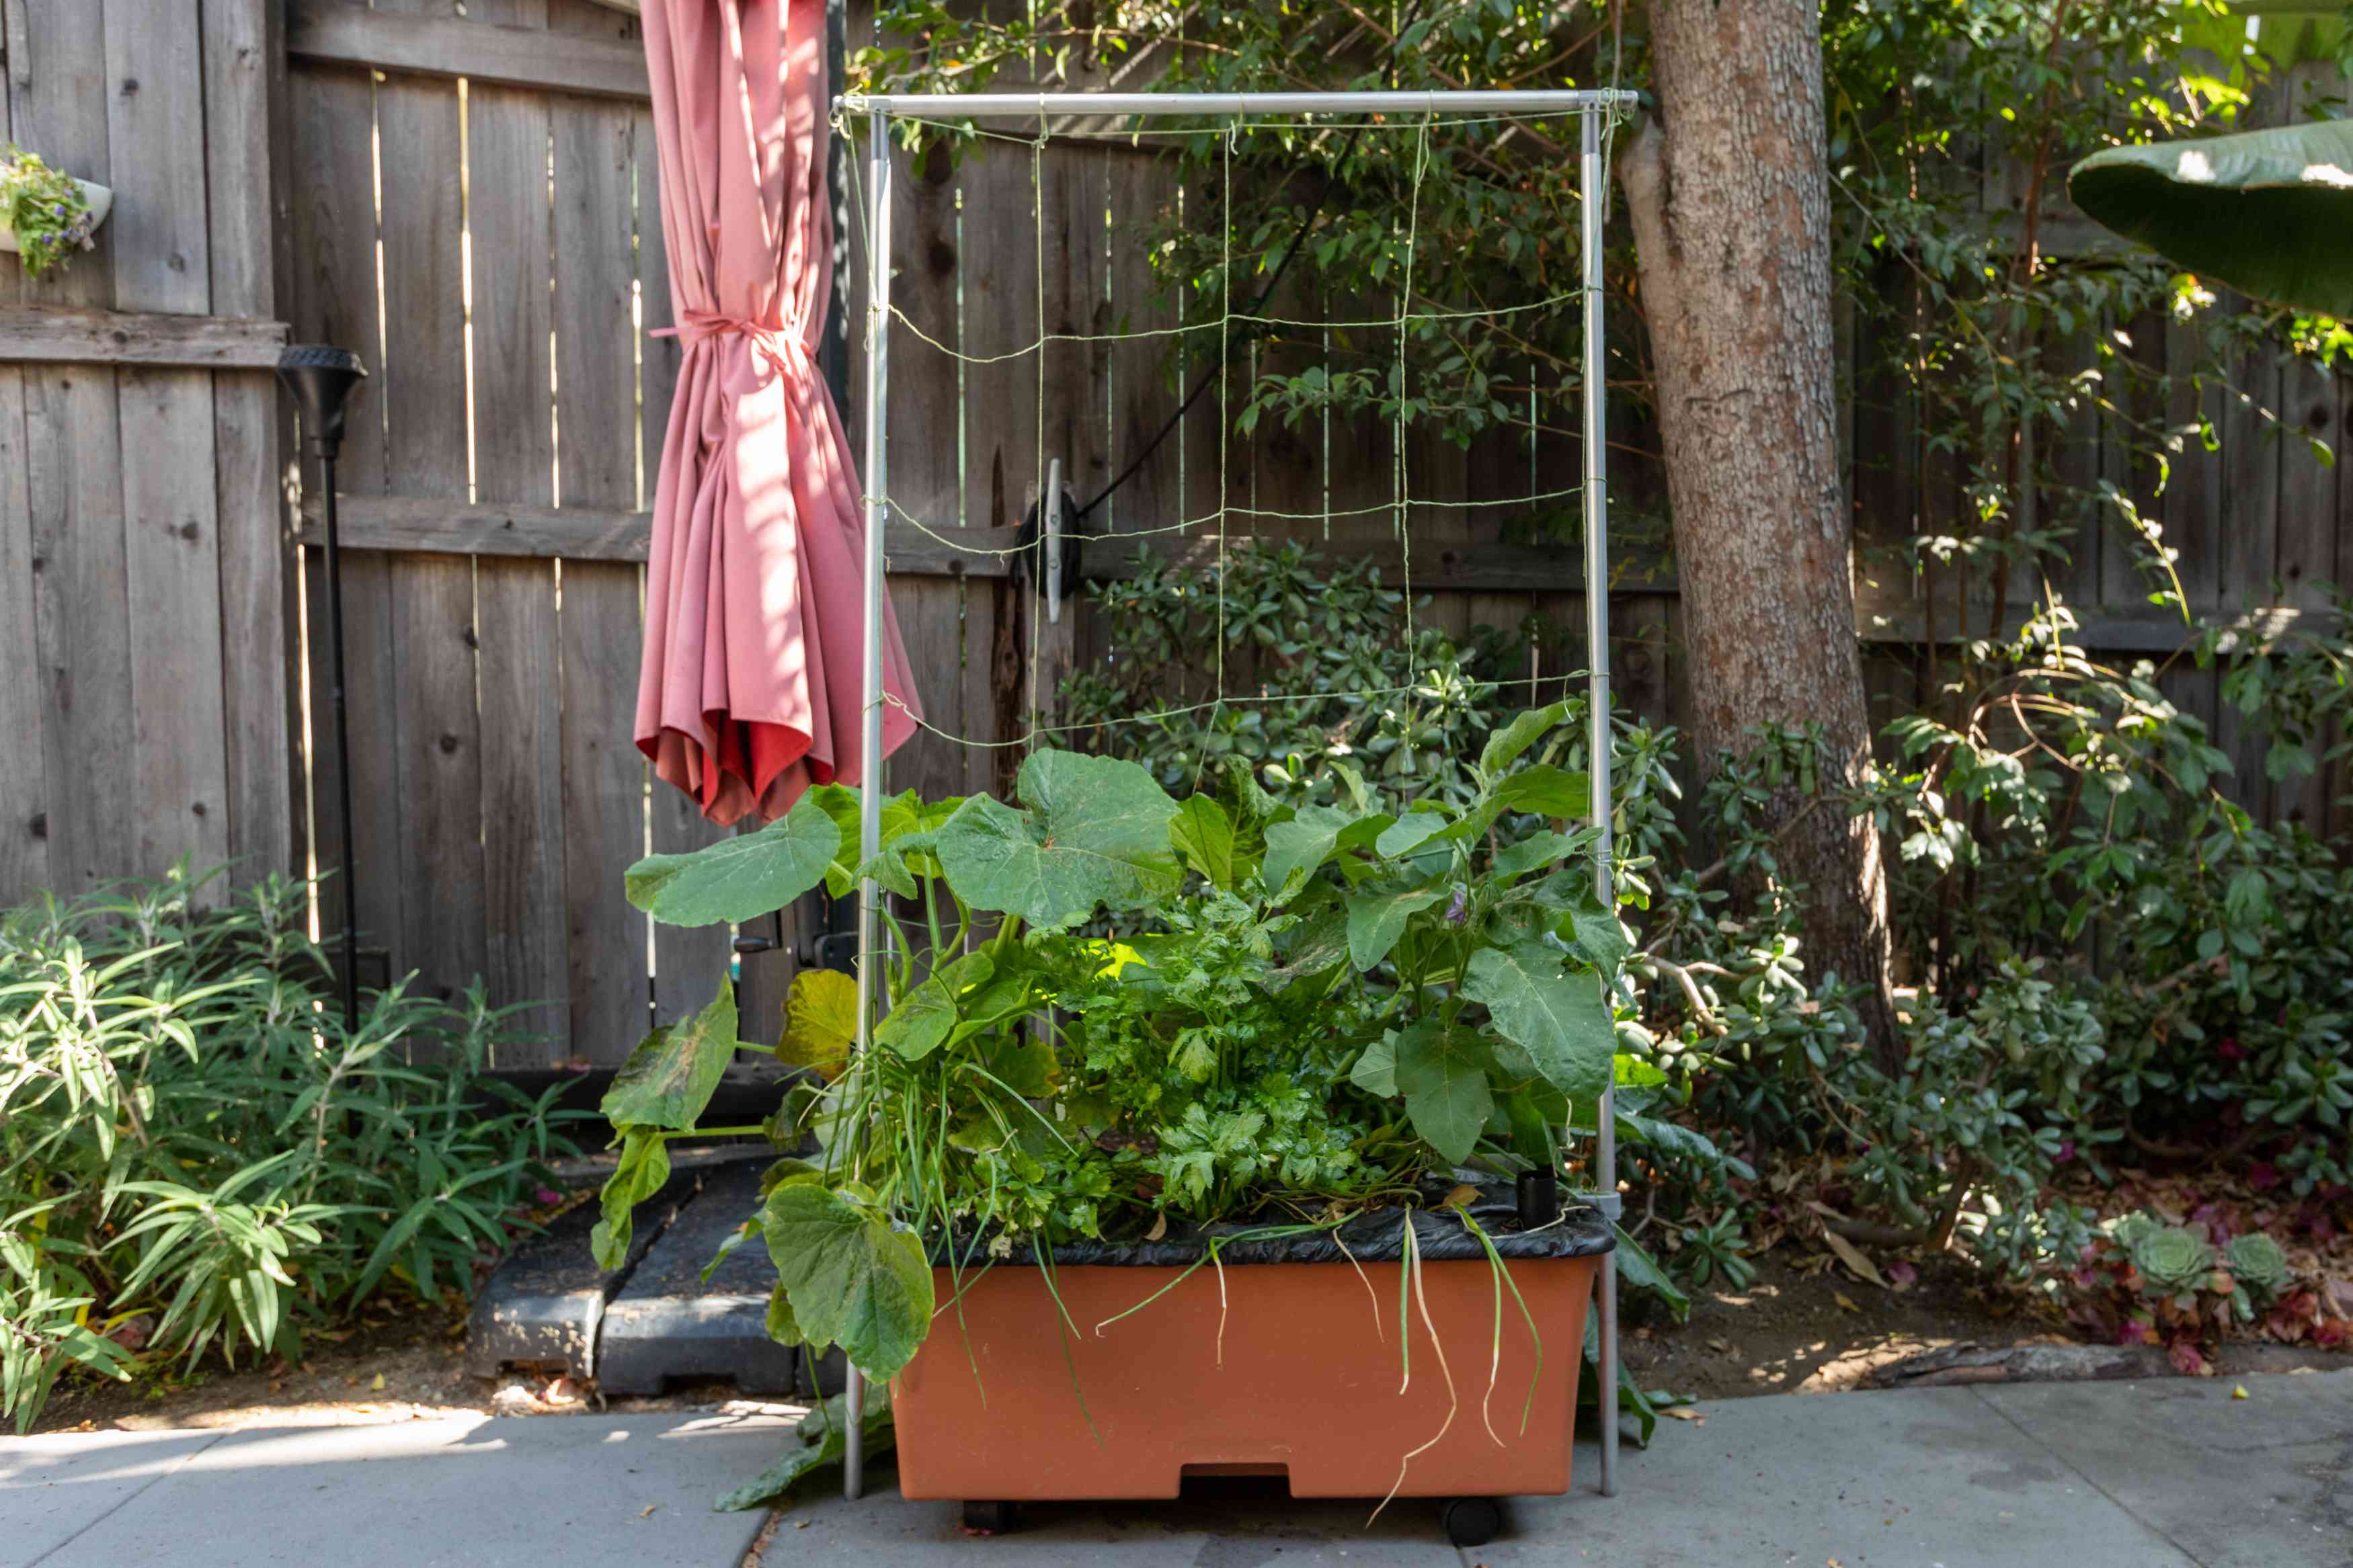 Earthbox growing container with large vegetable plants supported with string trellis in backyard